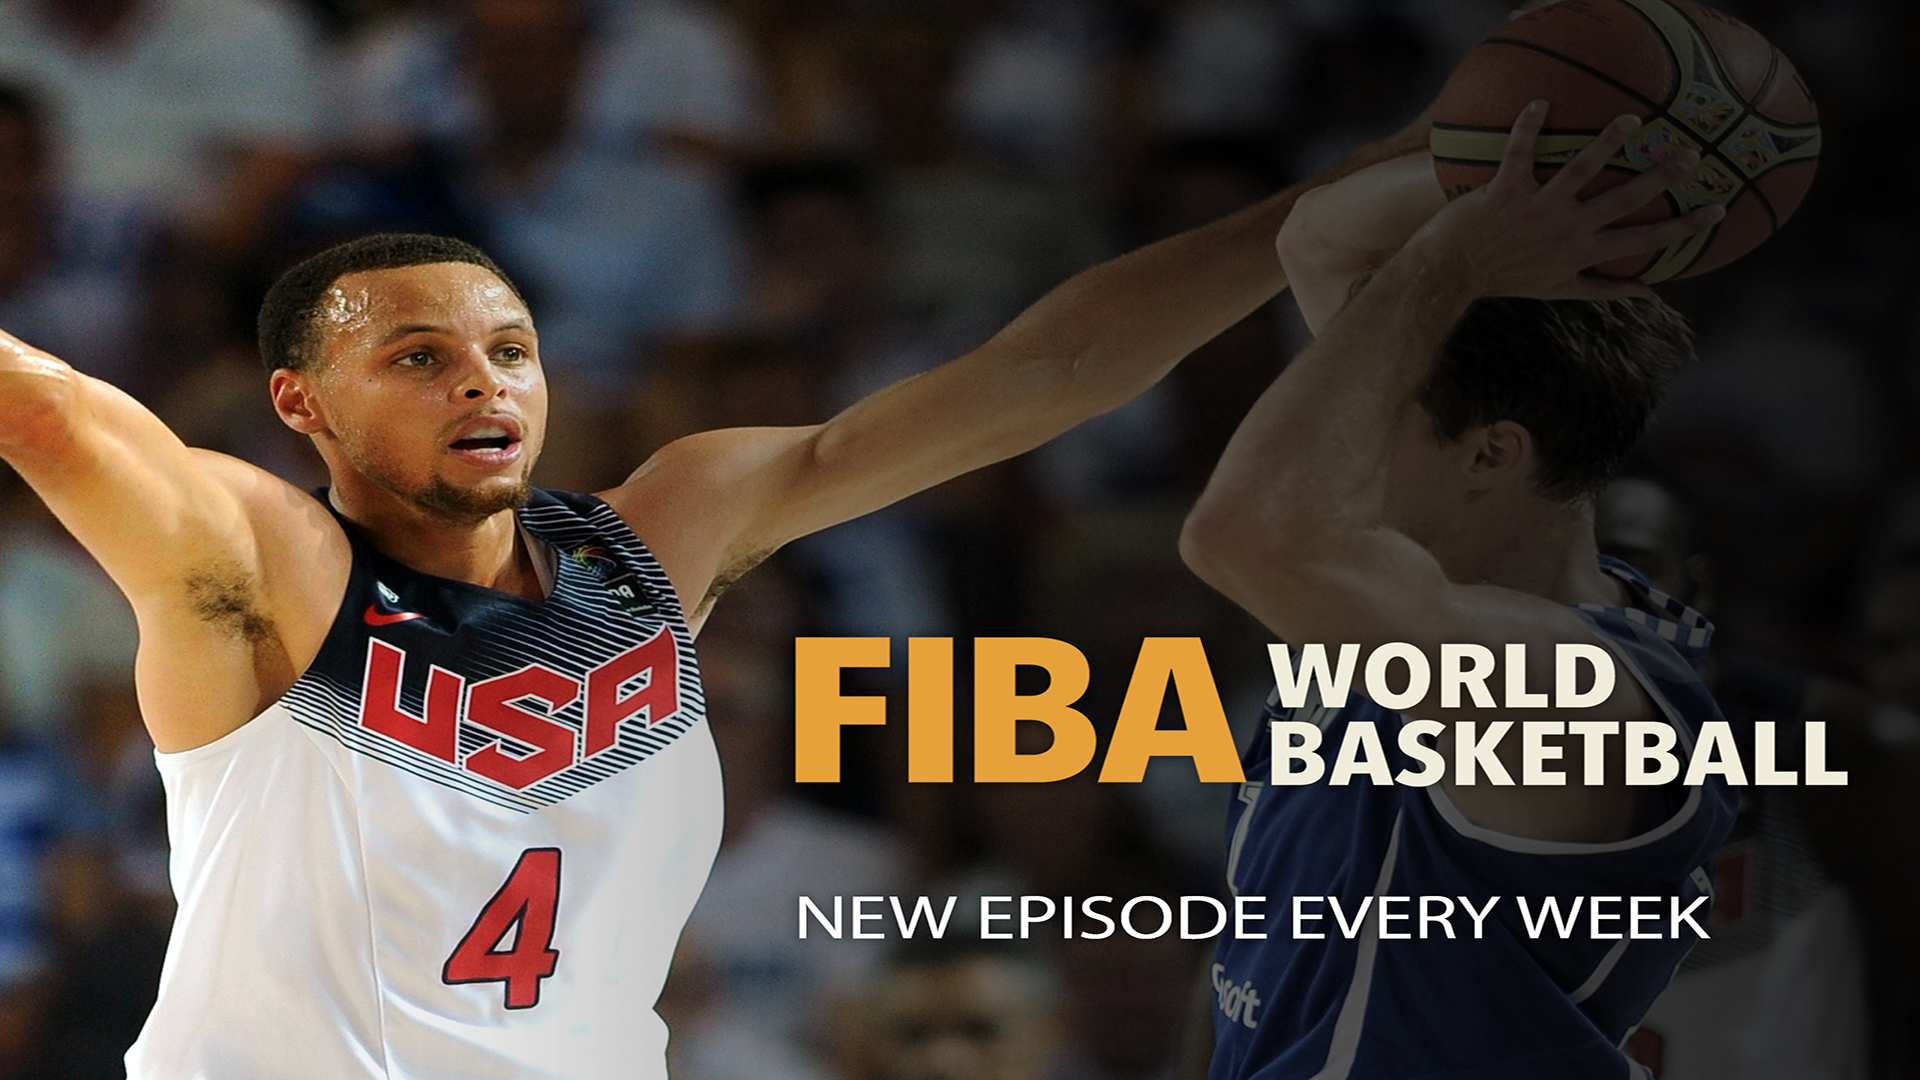 From a full episode of FIBA World Basketball